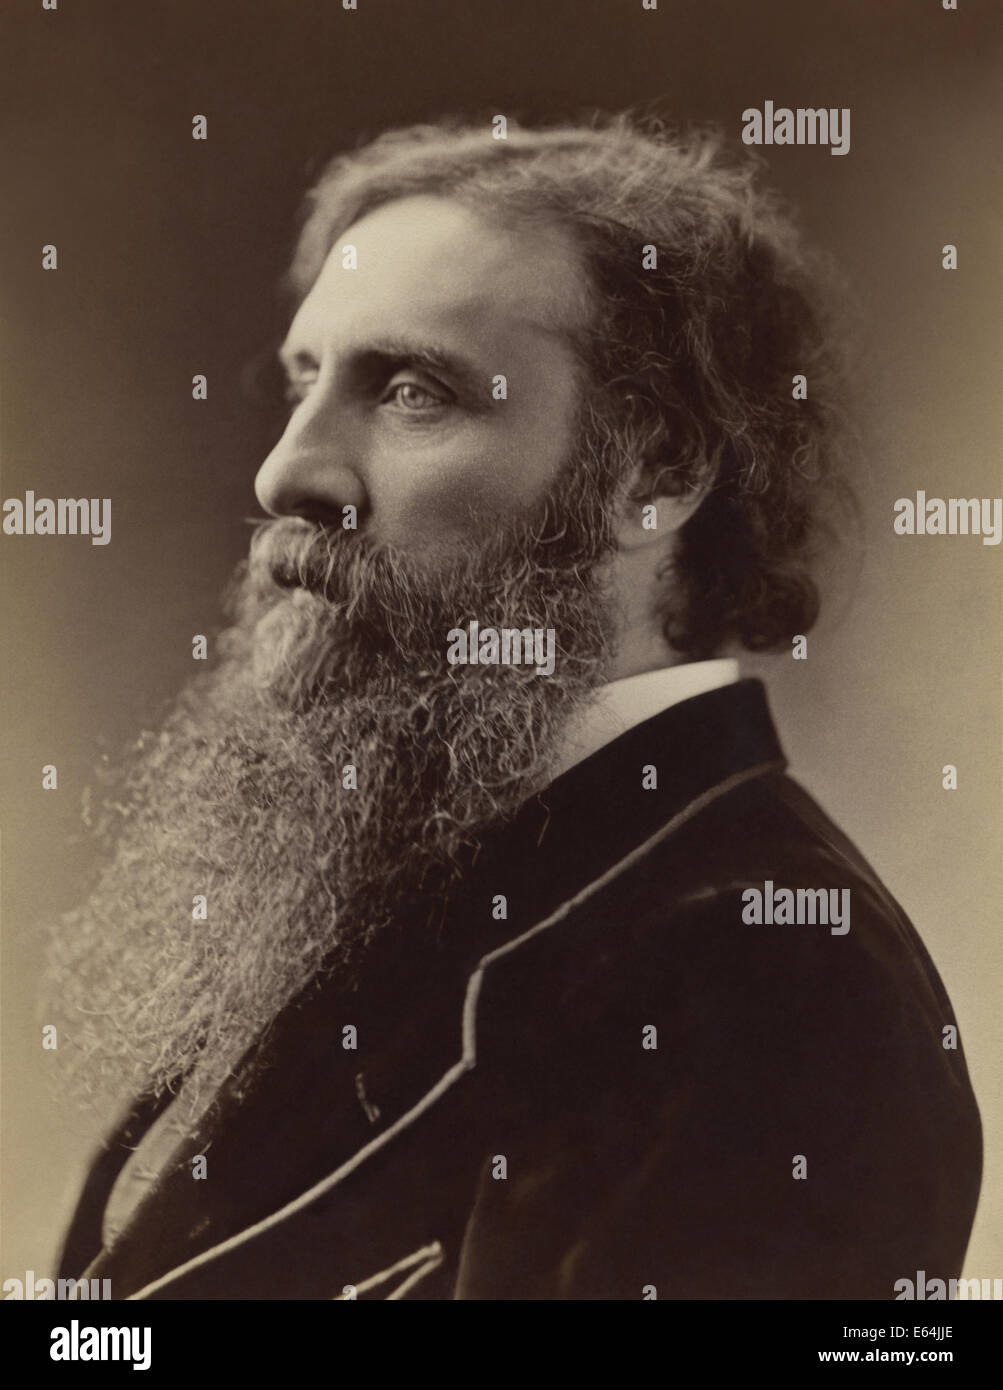 Scottish writer and minister George MacDonald was a major literary influence on CS Lewis, JRR Tolkien, WH Auden - Stock Image